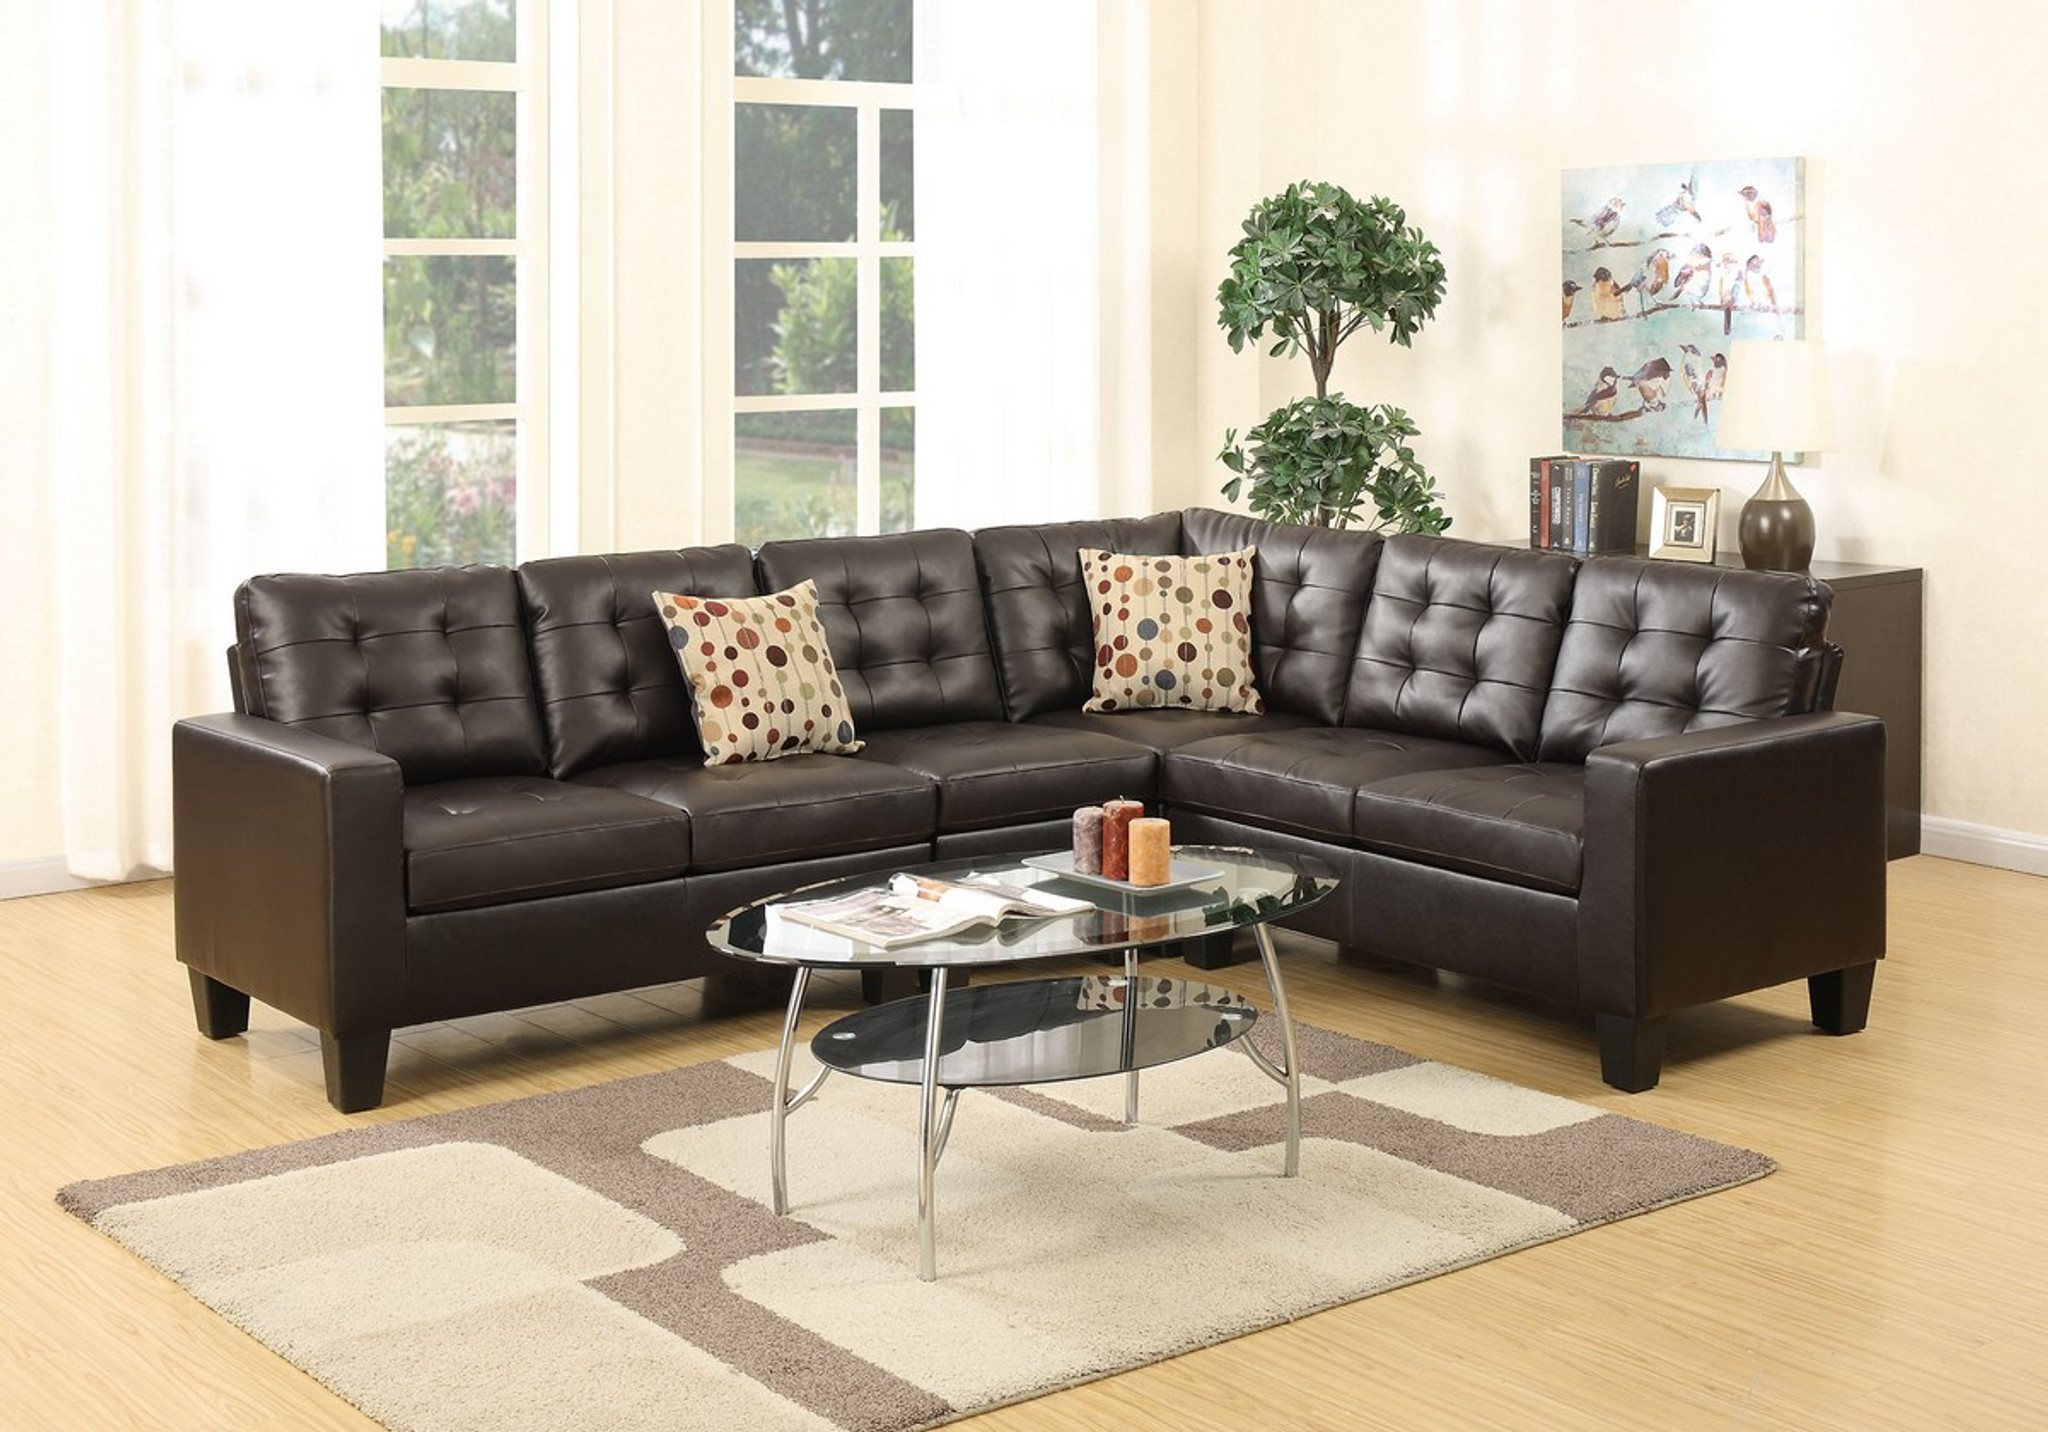 4-Pcs MODULAR SECTIONAL SOFA SET W/ ARMSLESS CHAIR & 2 ACCENT PILLOWS  UPHOLSTERED IN ESPRESSO LEATHER